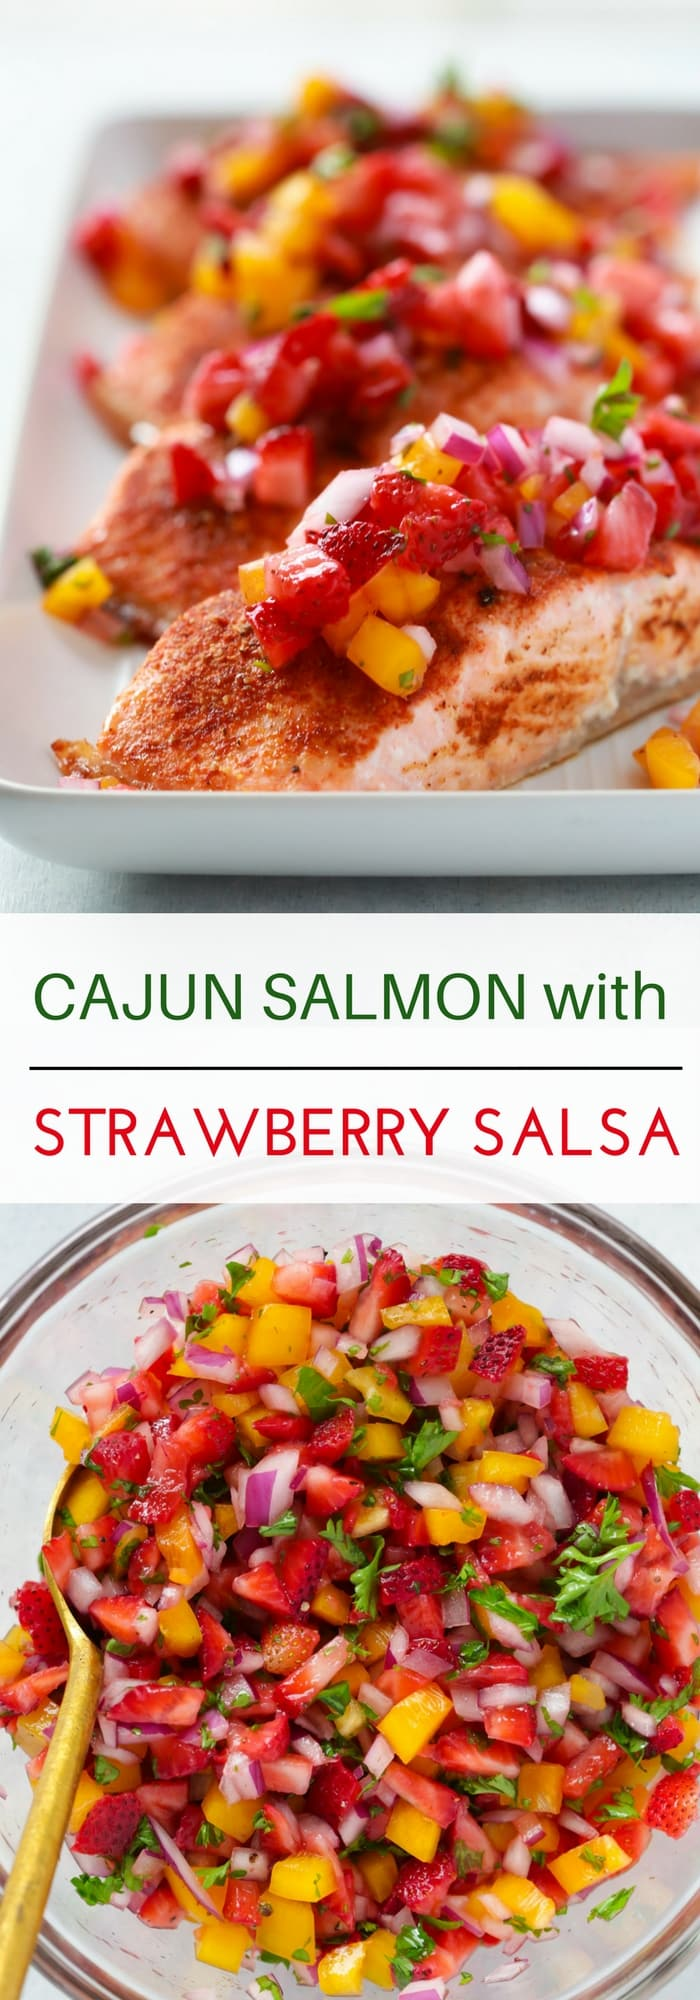 This Cajun Salmon with Strawberry Salsa is a perfect summer lunch or light dinner to enjoy during the week. It's easy to make, gluten-free, low-carb and paleo-friendly.